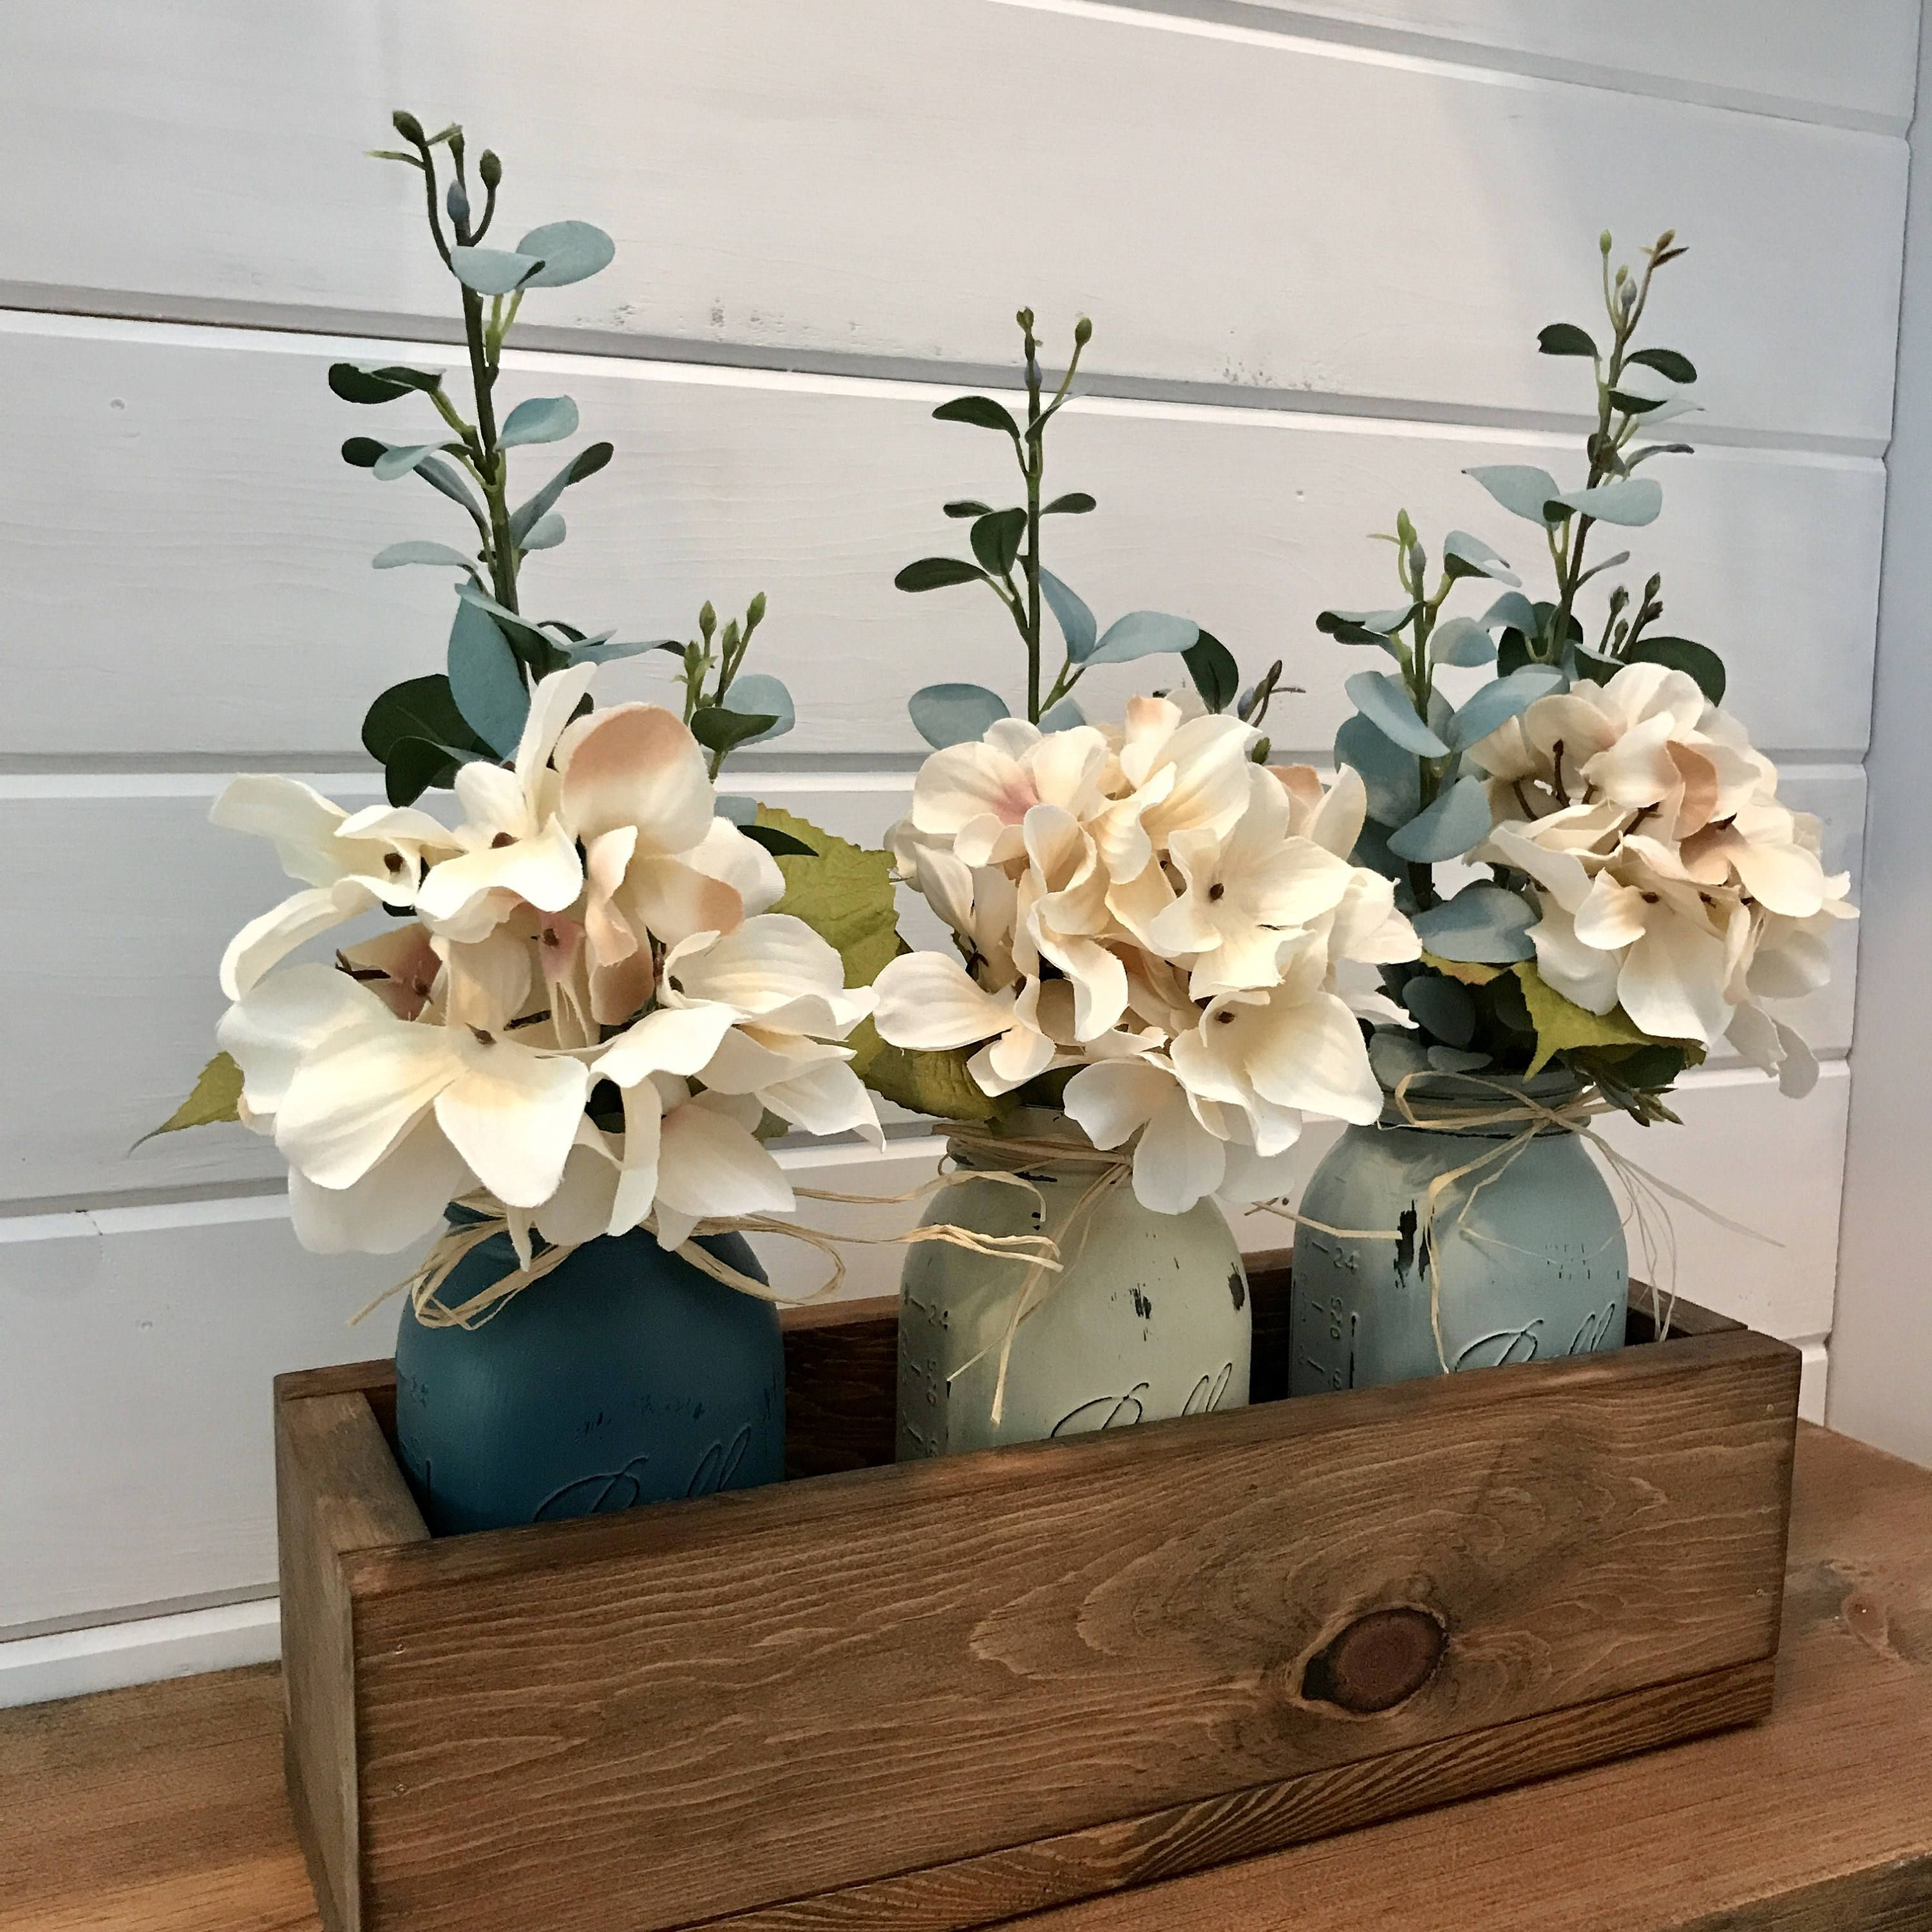 Where Would You Put This Kitchen Table Coffee Table Let Us Know Jsjbuilders Flora Kitchen Table Centerpiece Table Centerpieces For Home Diy Kitchen Table